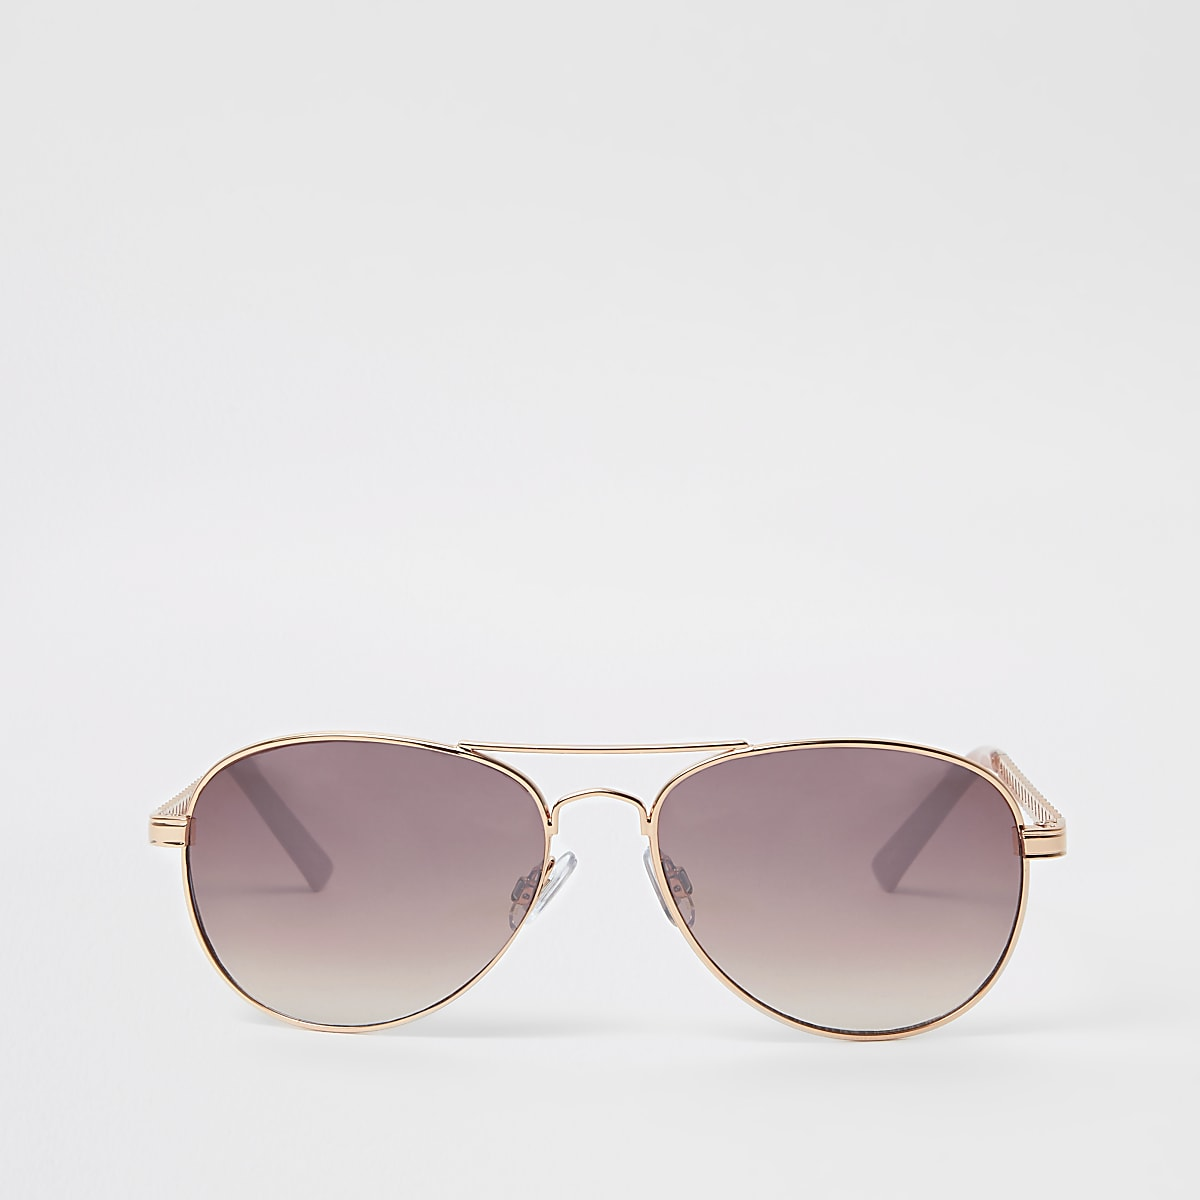 fb10919f1339d Rose gold pink lens chain aviator sunglasses - Aviator Sunglasses -  Sunglasses - women